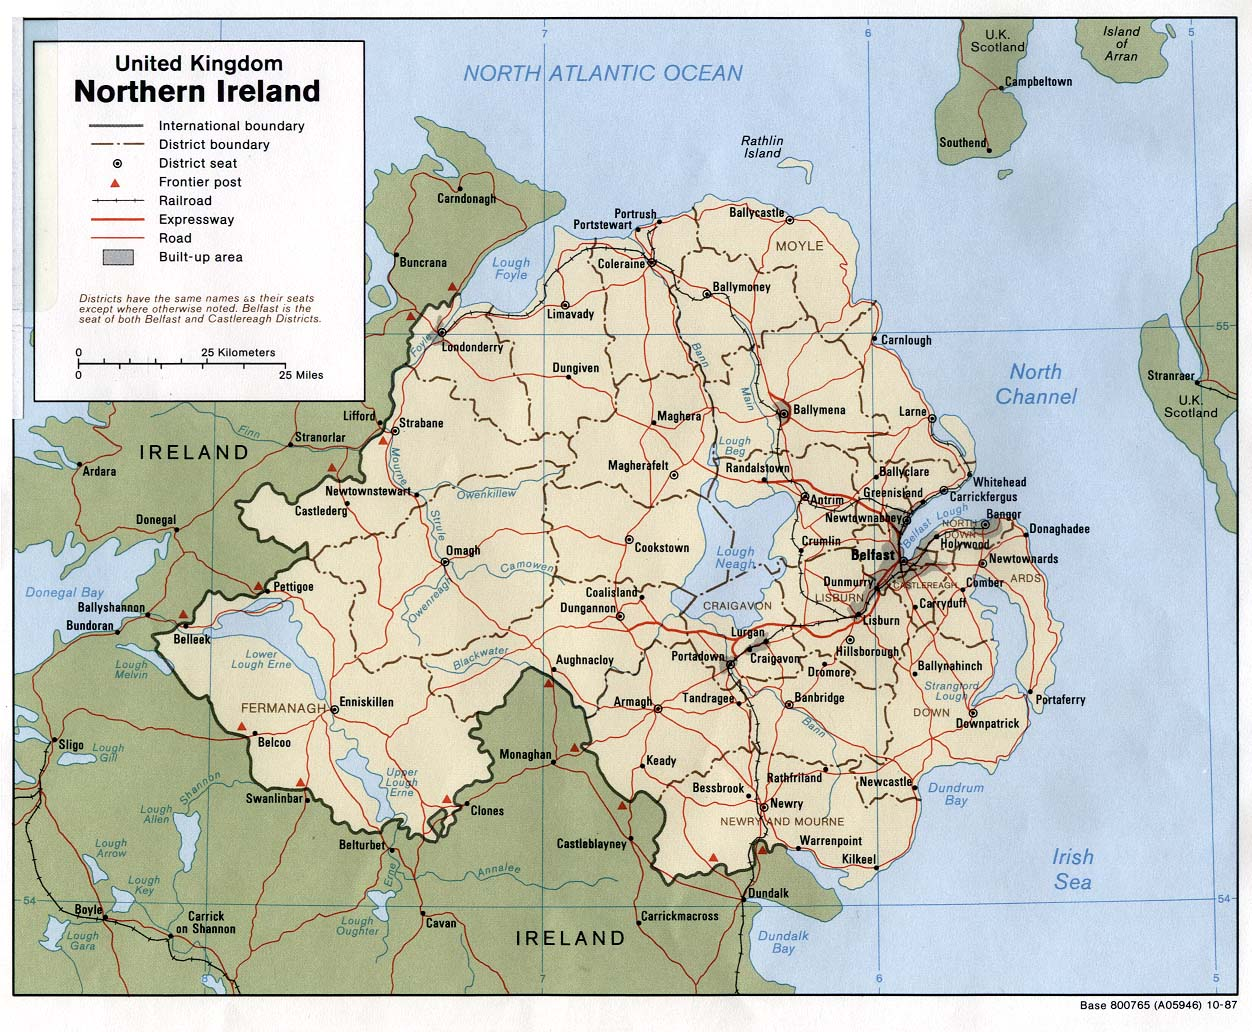 Irlanda do Norte | Mapas Geográficos da Irlanda do Norte